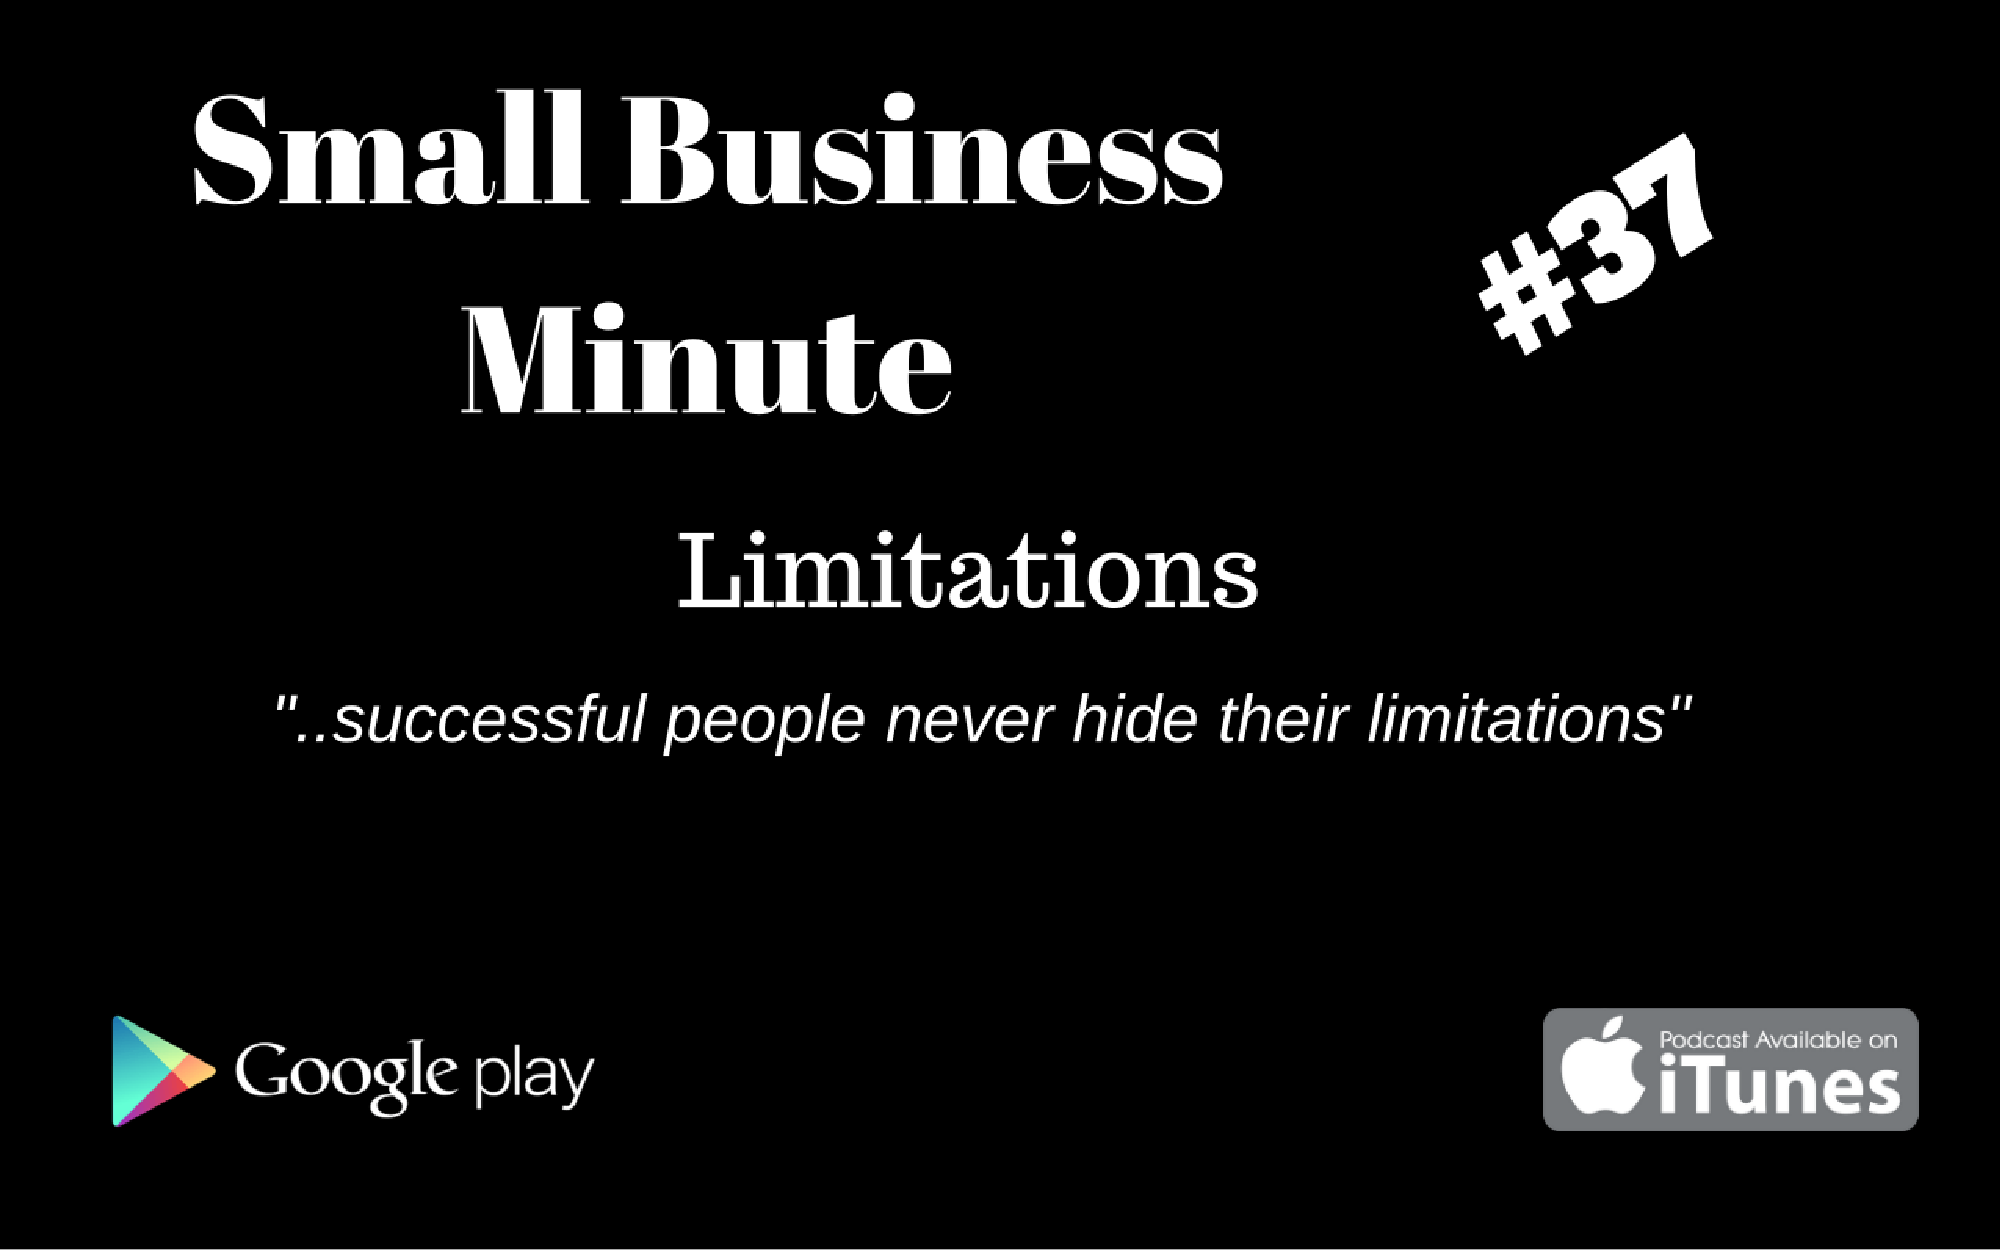 small-business-minute-37-limitations